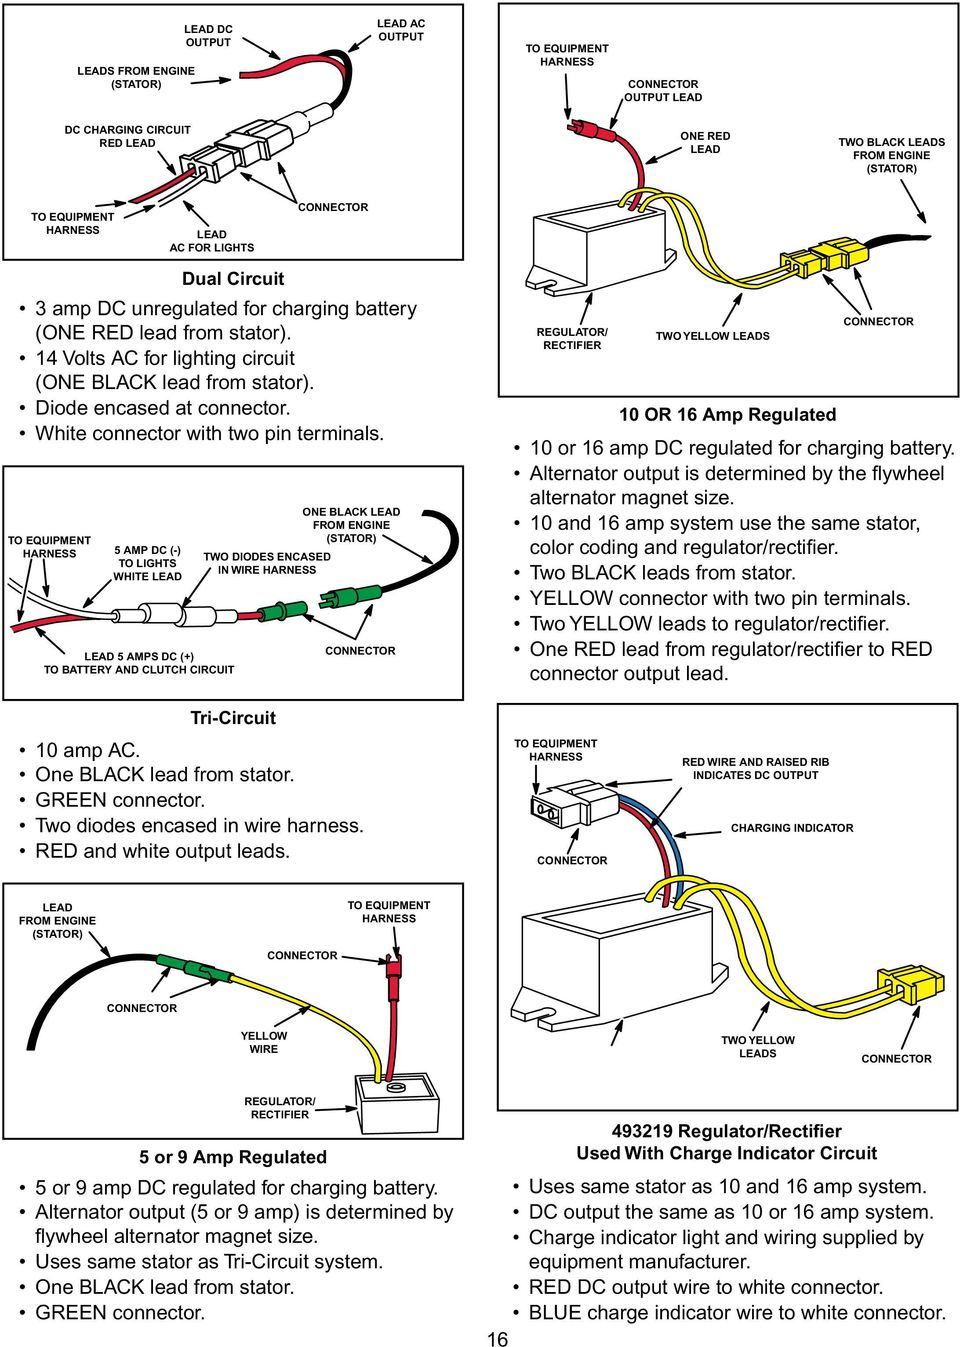 Engine Alternator Repower Guide Pdf Rib Harness Clip Wiring White Connector With Two Pin Terminals